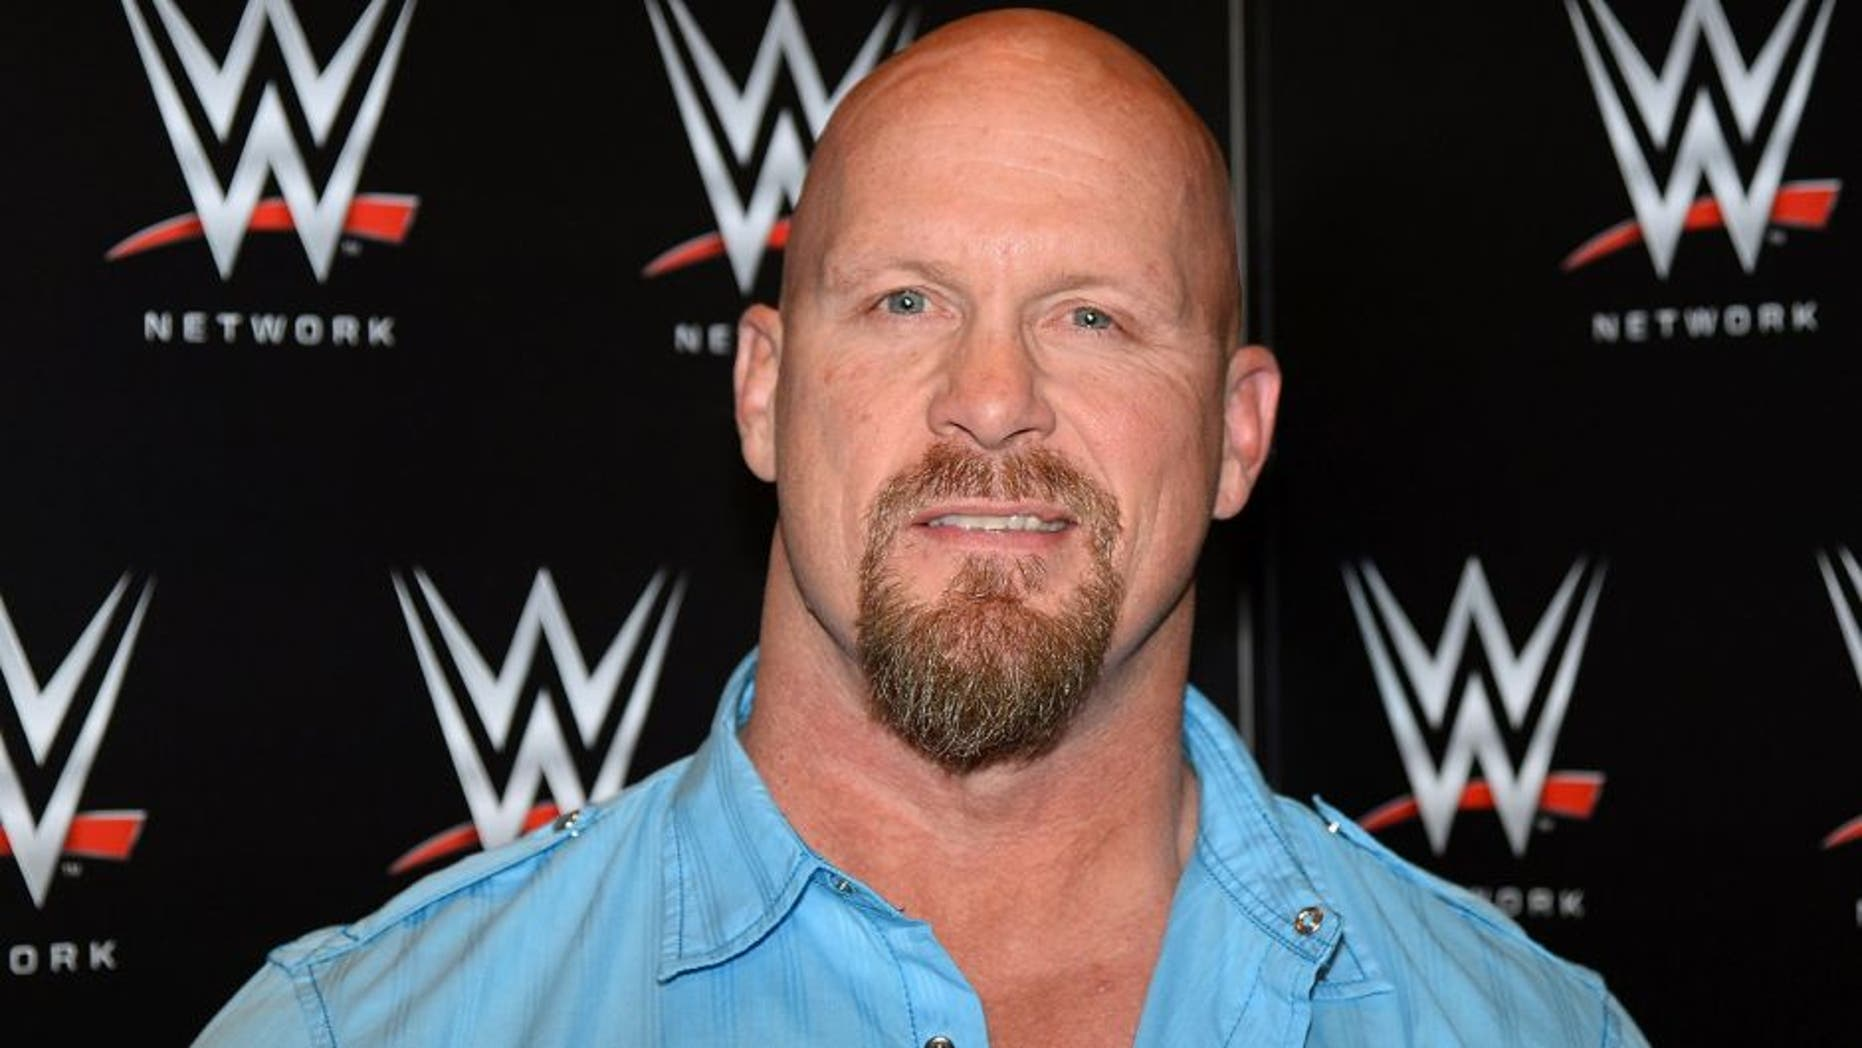 """LAS VEGAS, NV - JANUARY 08: Actor and WWE personality """"Stone Cold"""" Steve Austin appears at a news conference announcing the WWE Network at the 2014 International CES at the Encore Theater at Wynn Las Vegas on January 8, 2014 in Las Vegas, Nevada. The network will launch on February 24, 2014 as the first-ever 24/7 streaming network, offering both scheduled programs and video on demand. The USD 9.99 per month subscription will include access to all 12 live WWE pay-per-view events each year. CES, the world's largest annual consumer technology trade show, runs through January 10 and is expected to feature 3,200 exhibitors showing off their latest products and services to about 150,000 attendees. (Photo by Ethan Miller/Getty Images)"""